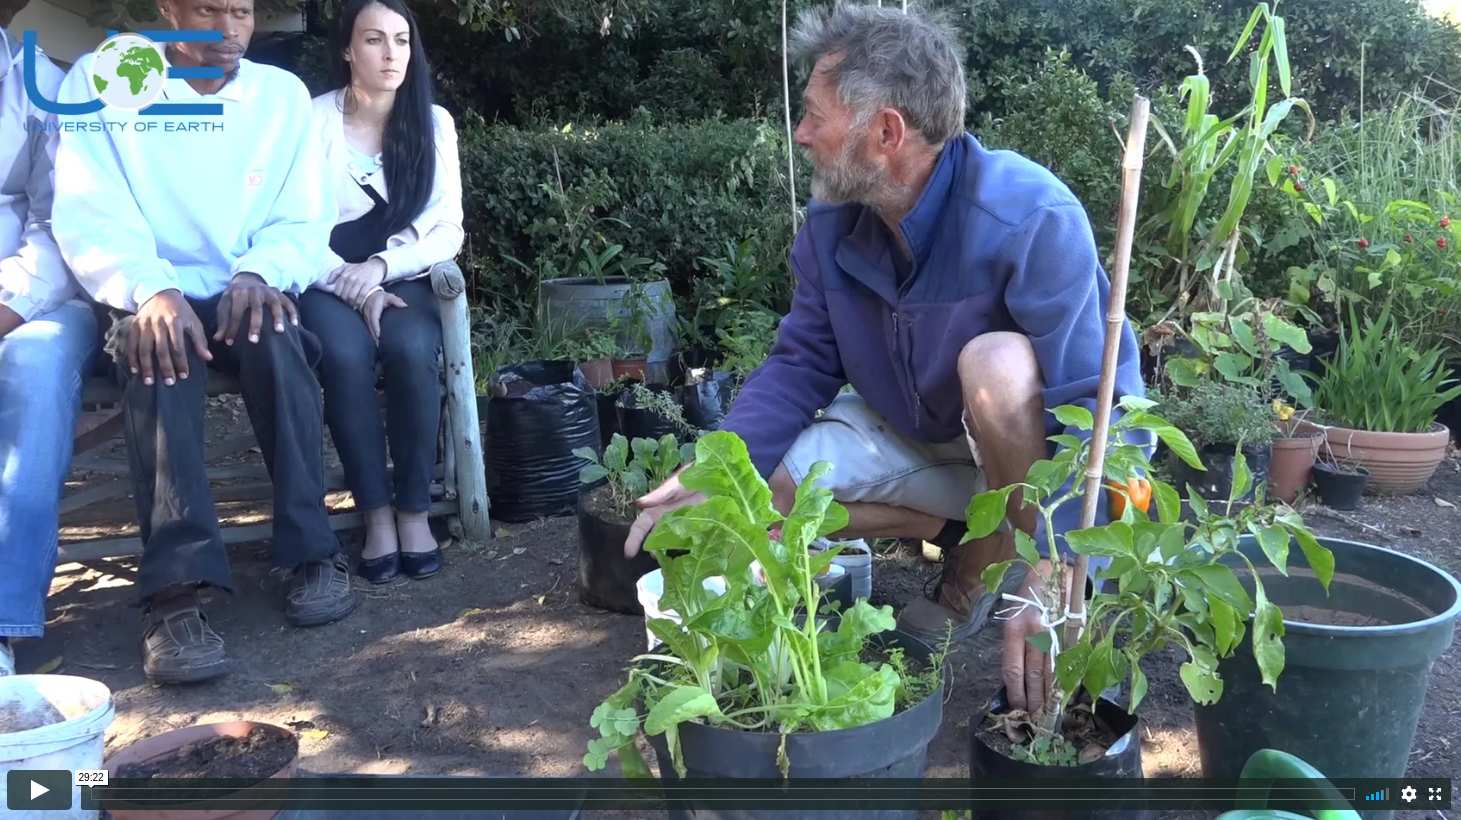 UNIVERSITY OF EARTH: DAY 11 – PERMACULTURE 6